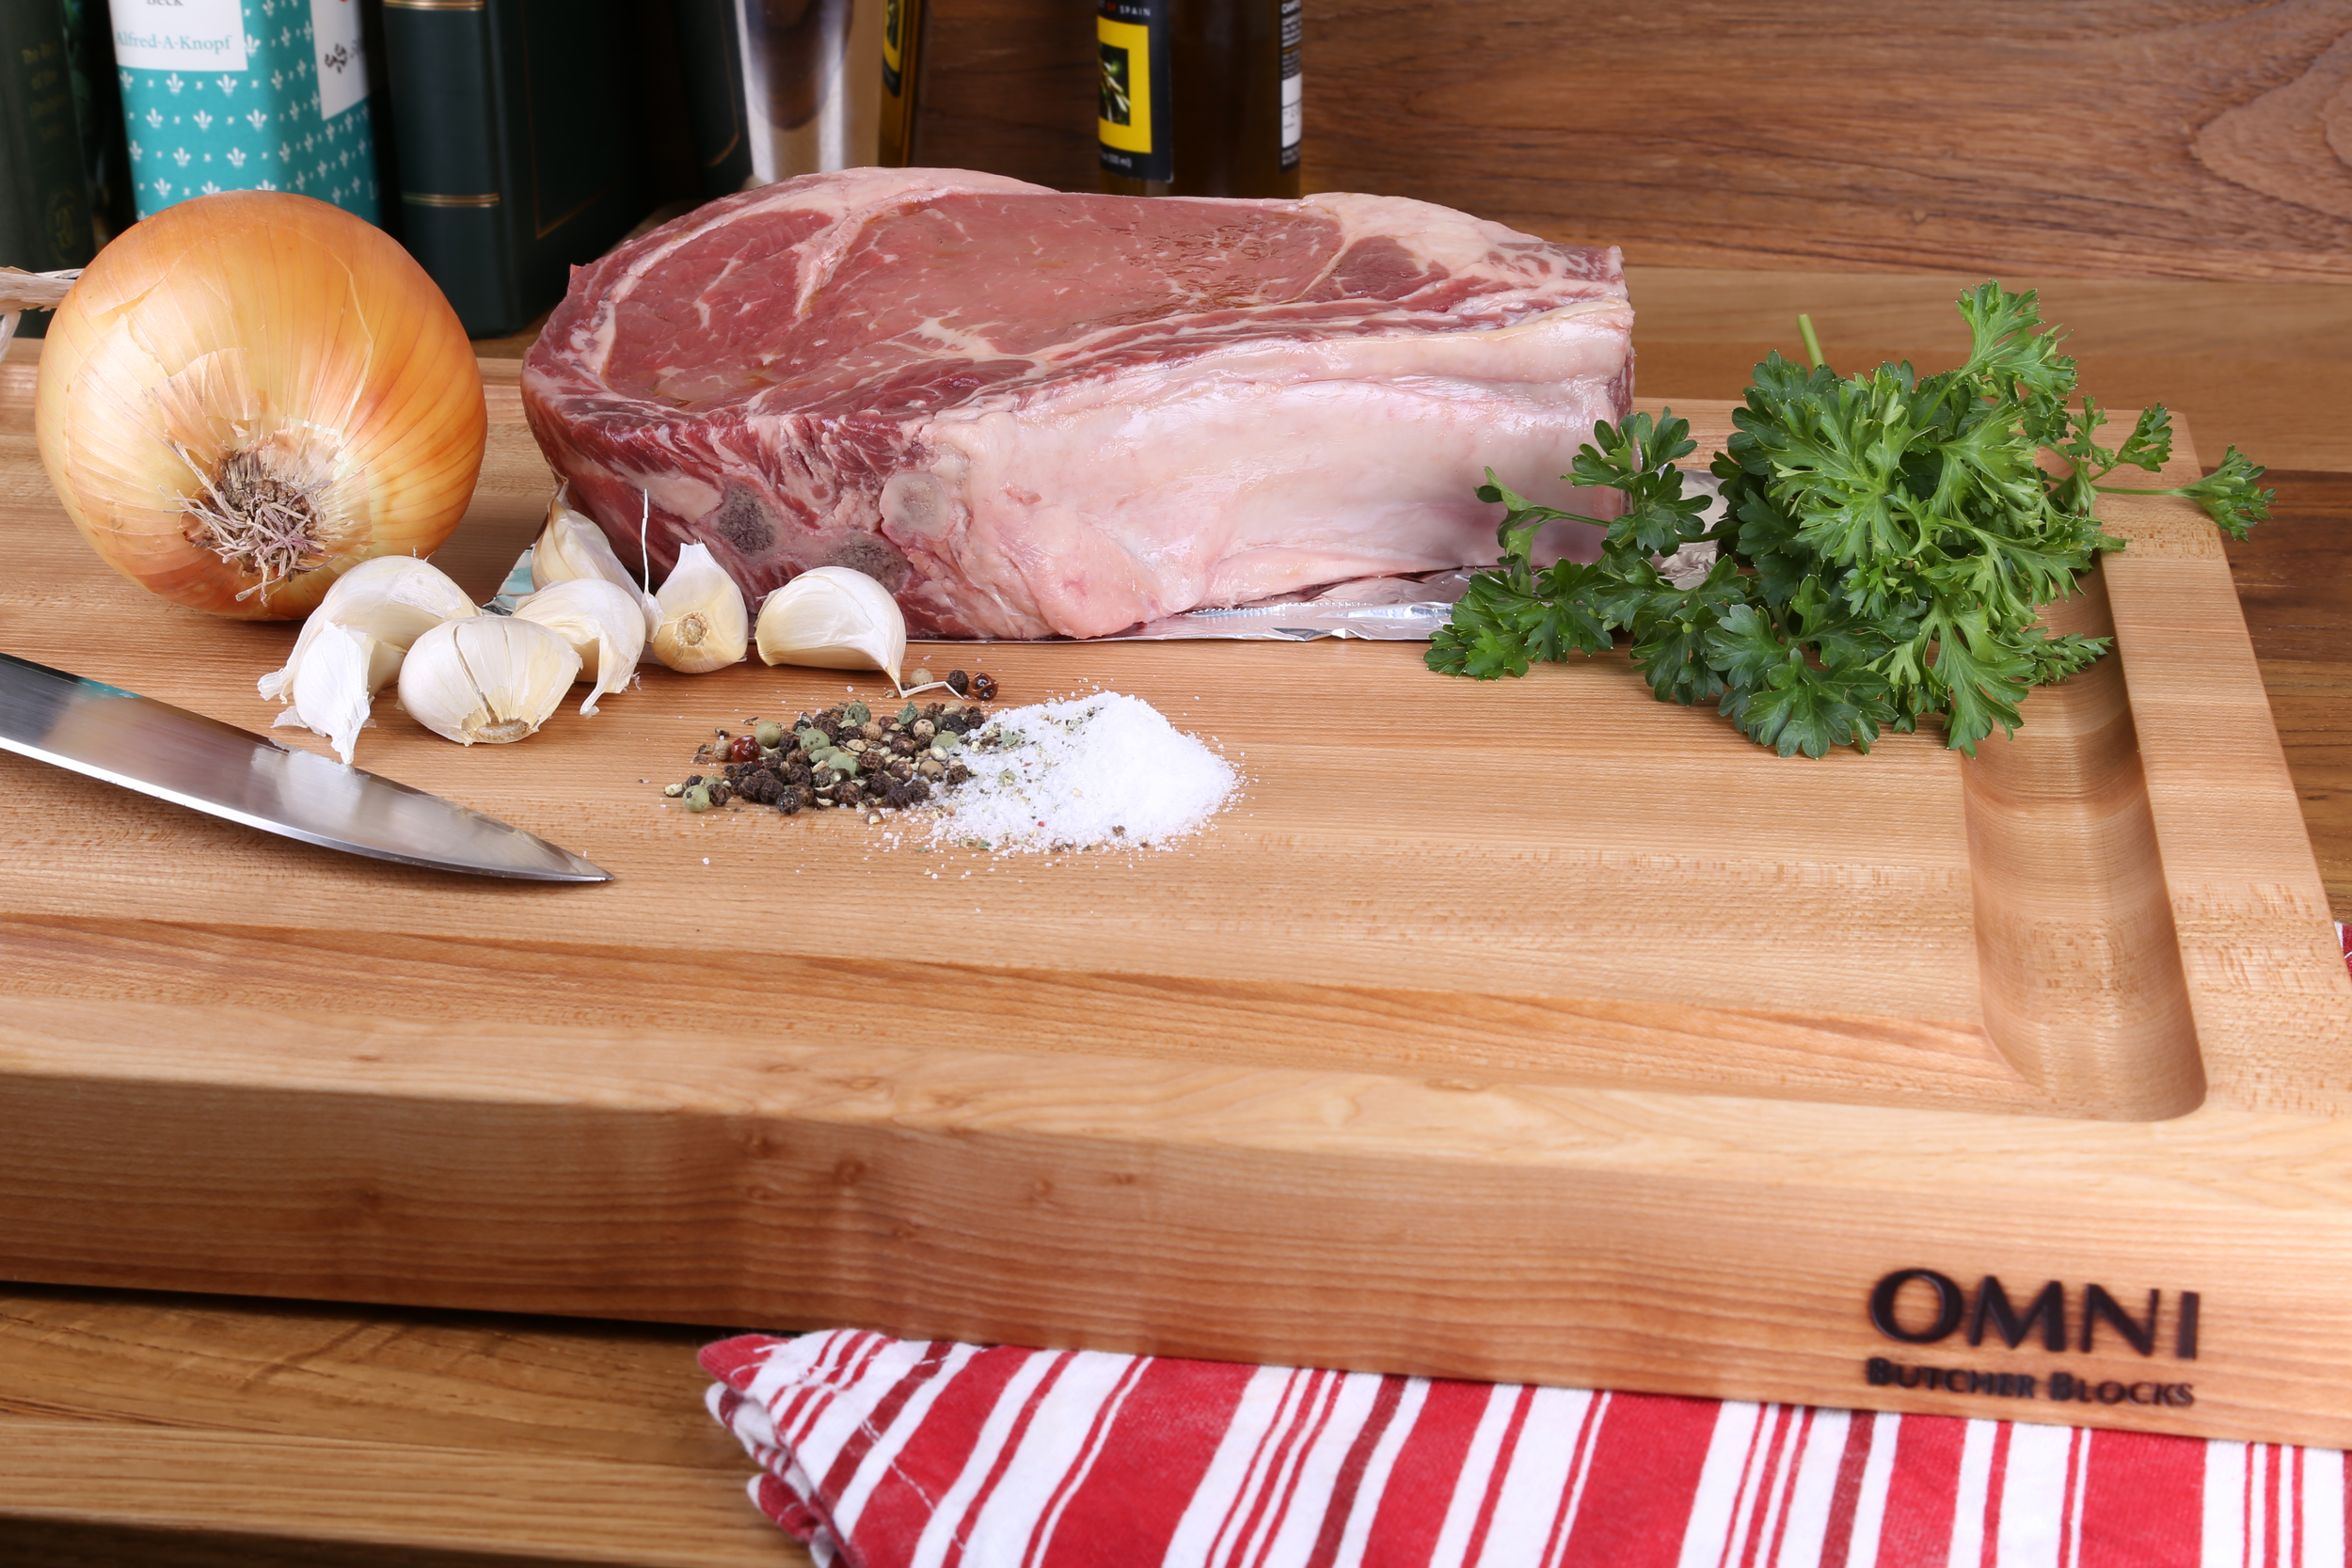 """This beautiful carving board is crafted out of hand-selected, Hard Sugar Maple. The extra large juice perimeter helps to catch juices from all your meats. This board is truly one of a kind!  Approximate measurements are 22"""" x 16"""" x1 1/2"""".$145.00 plus applicable taxes and shipping."""